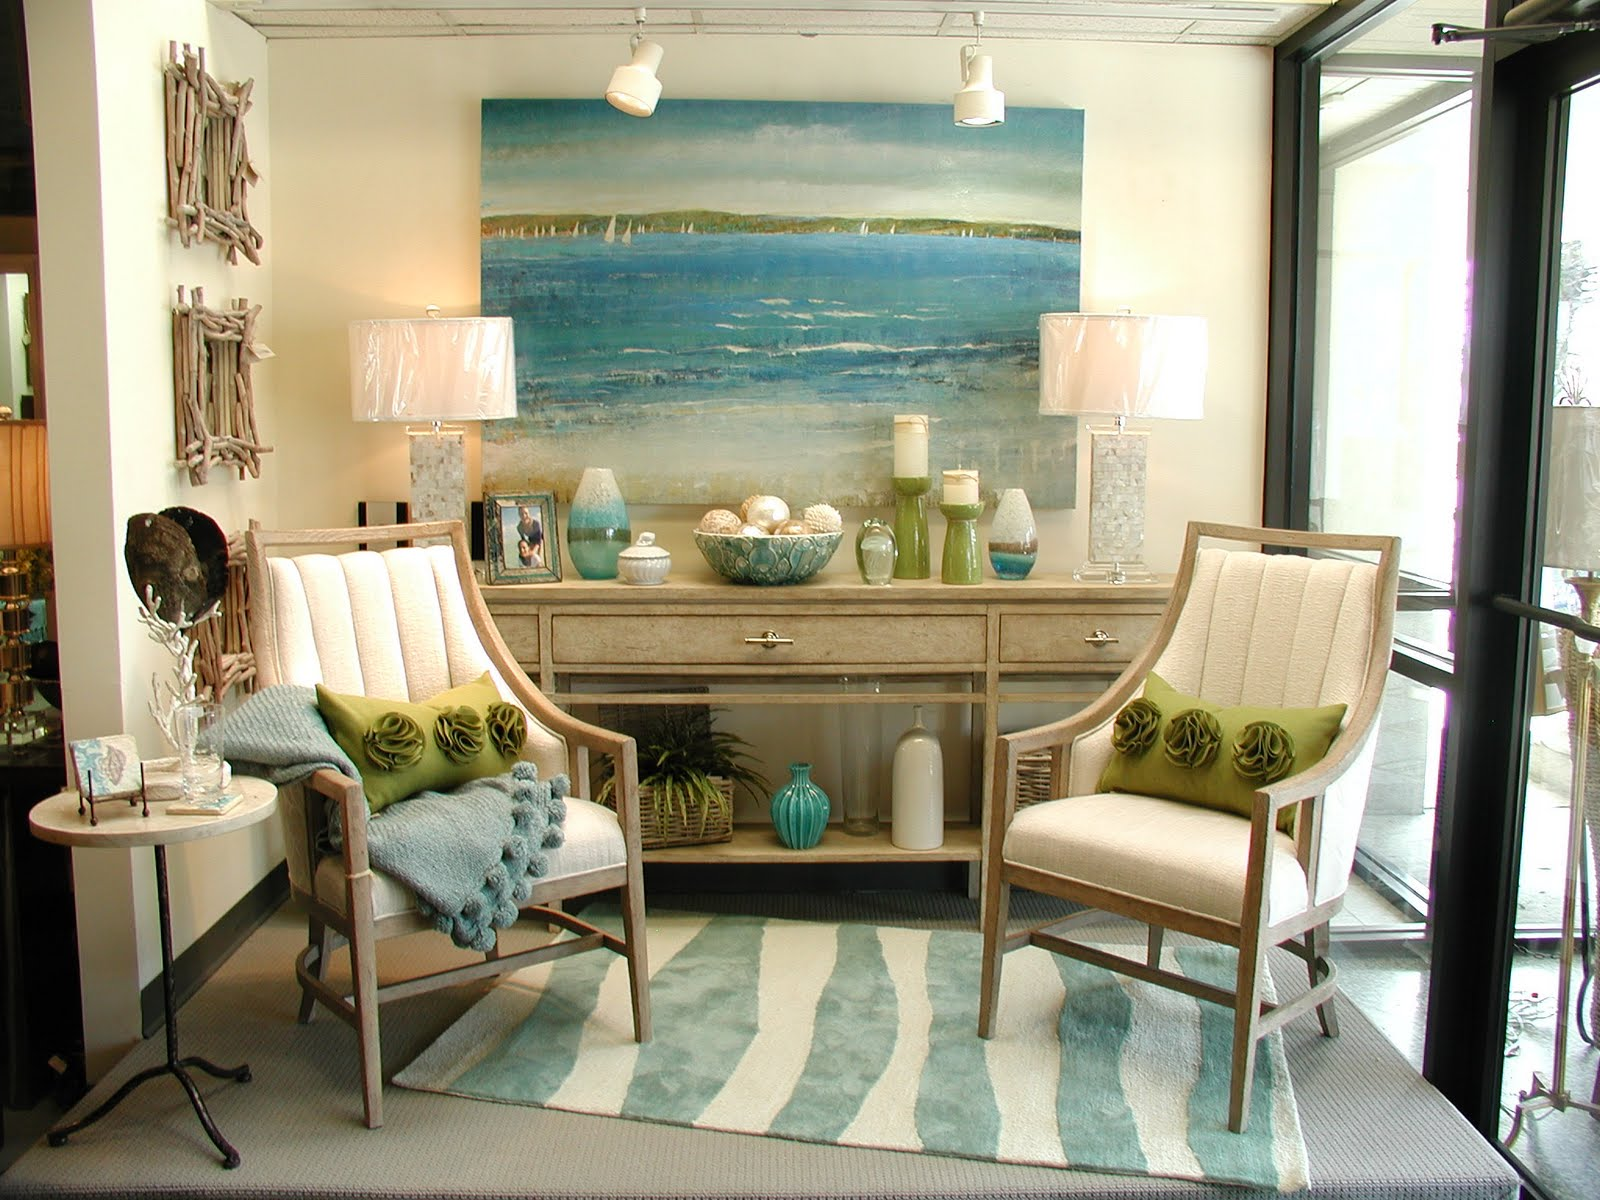 Details of design interior design in annapolis this summer for Decor interior design